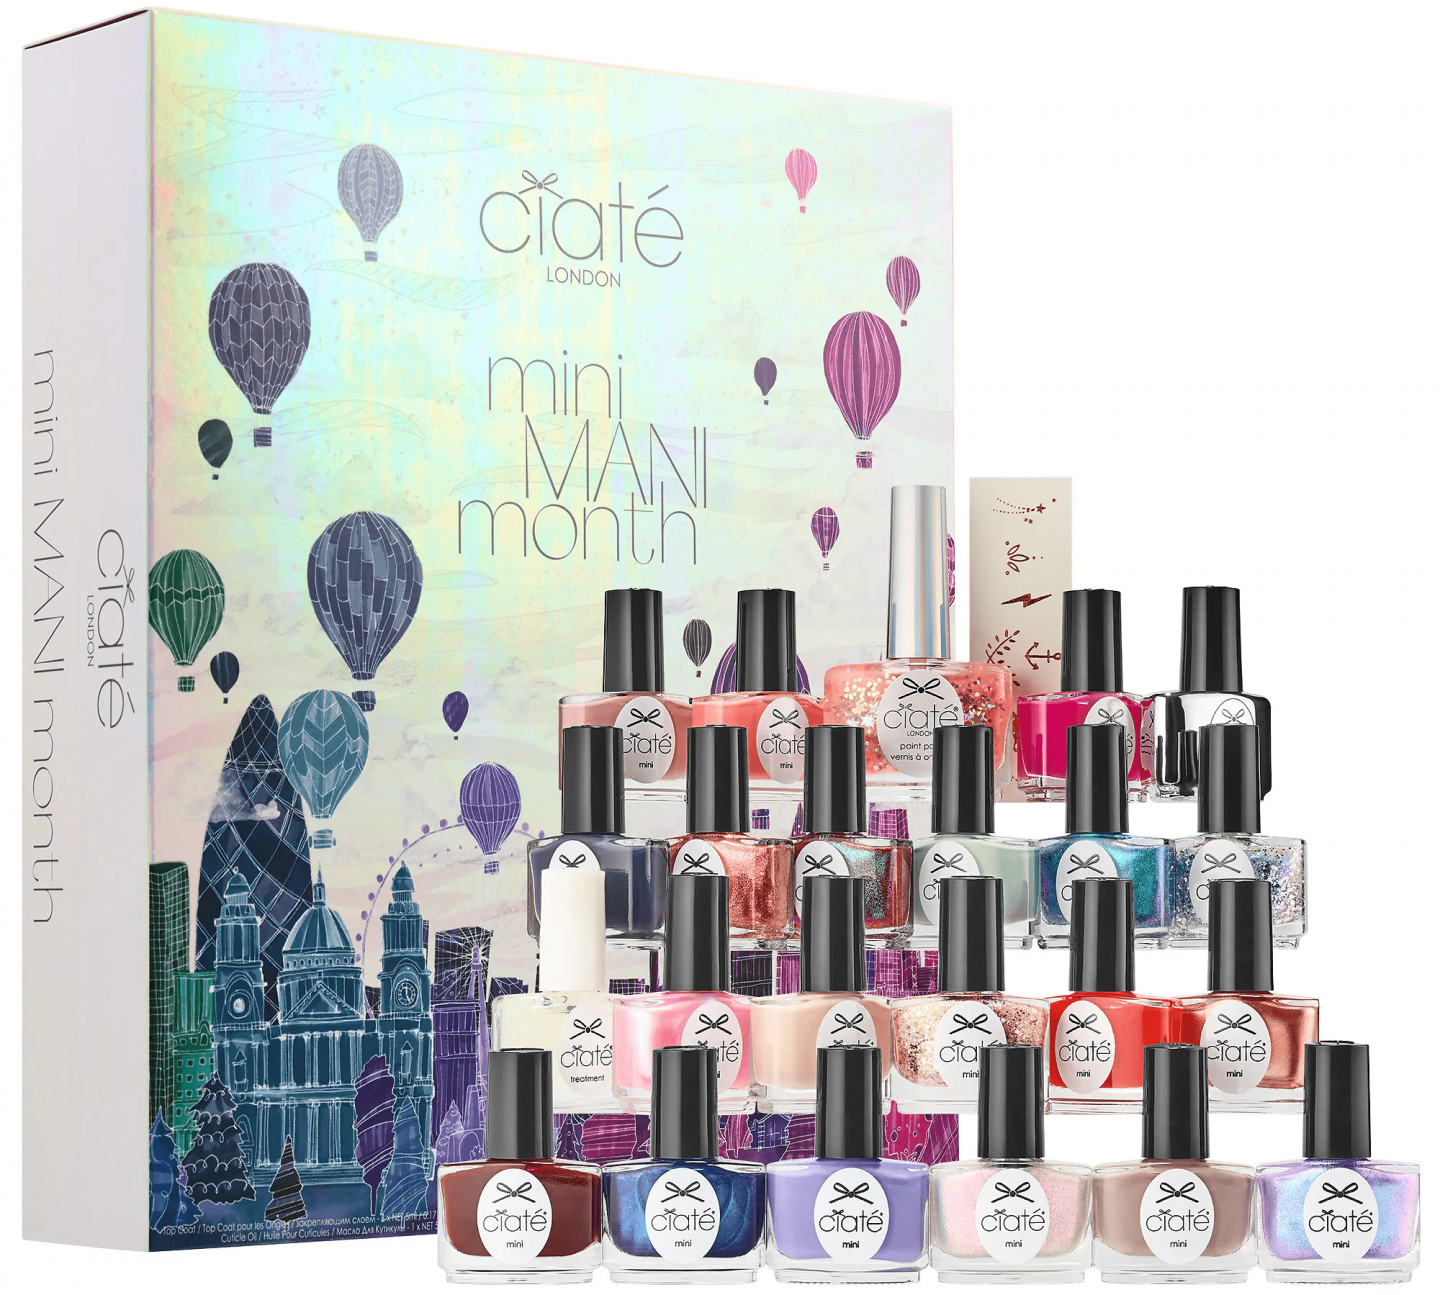 Ciate London Mini Mani